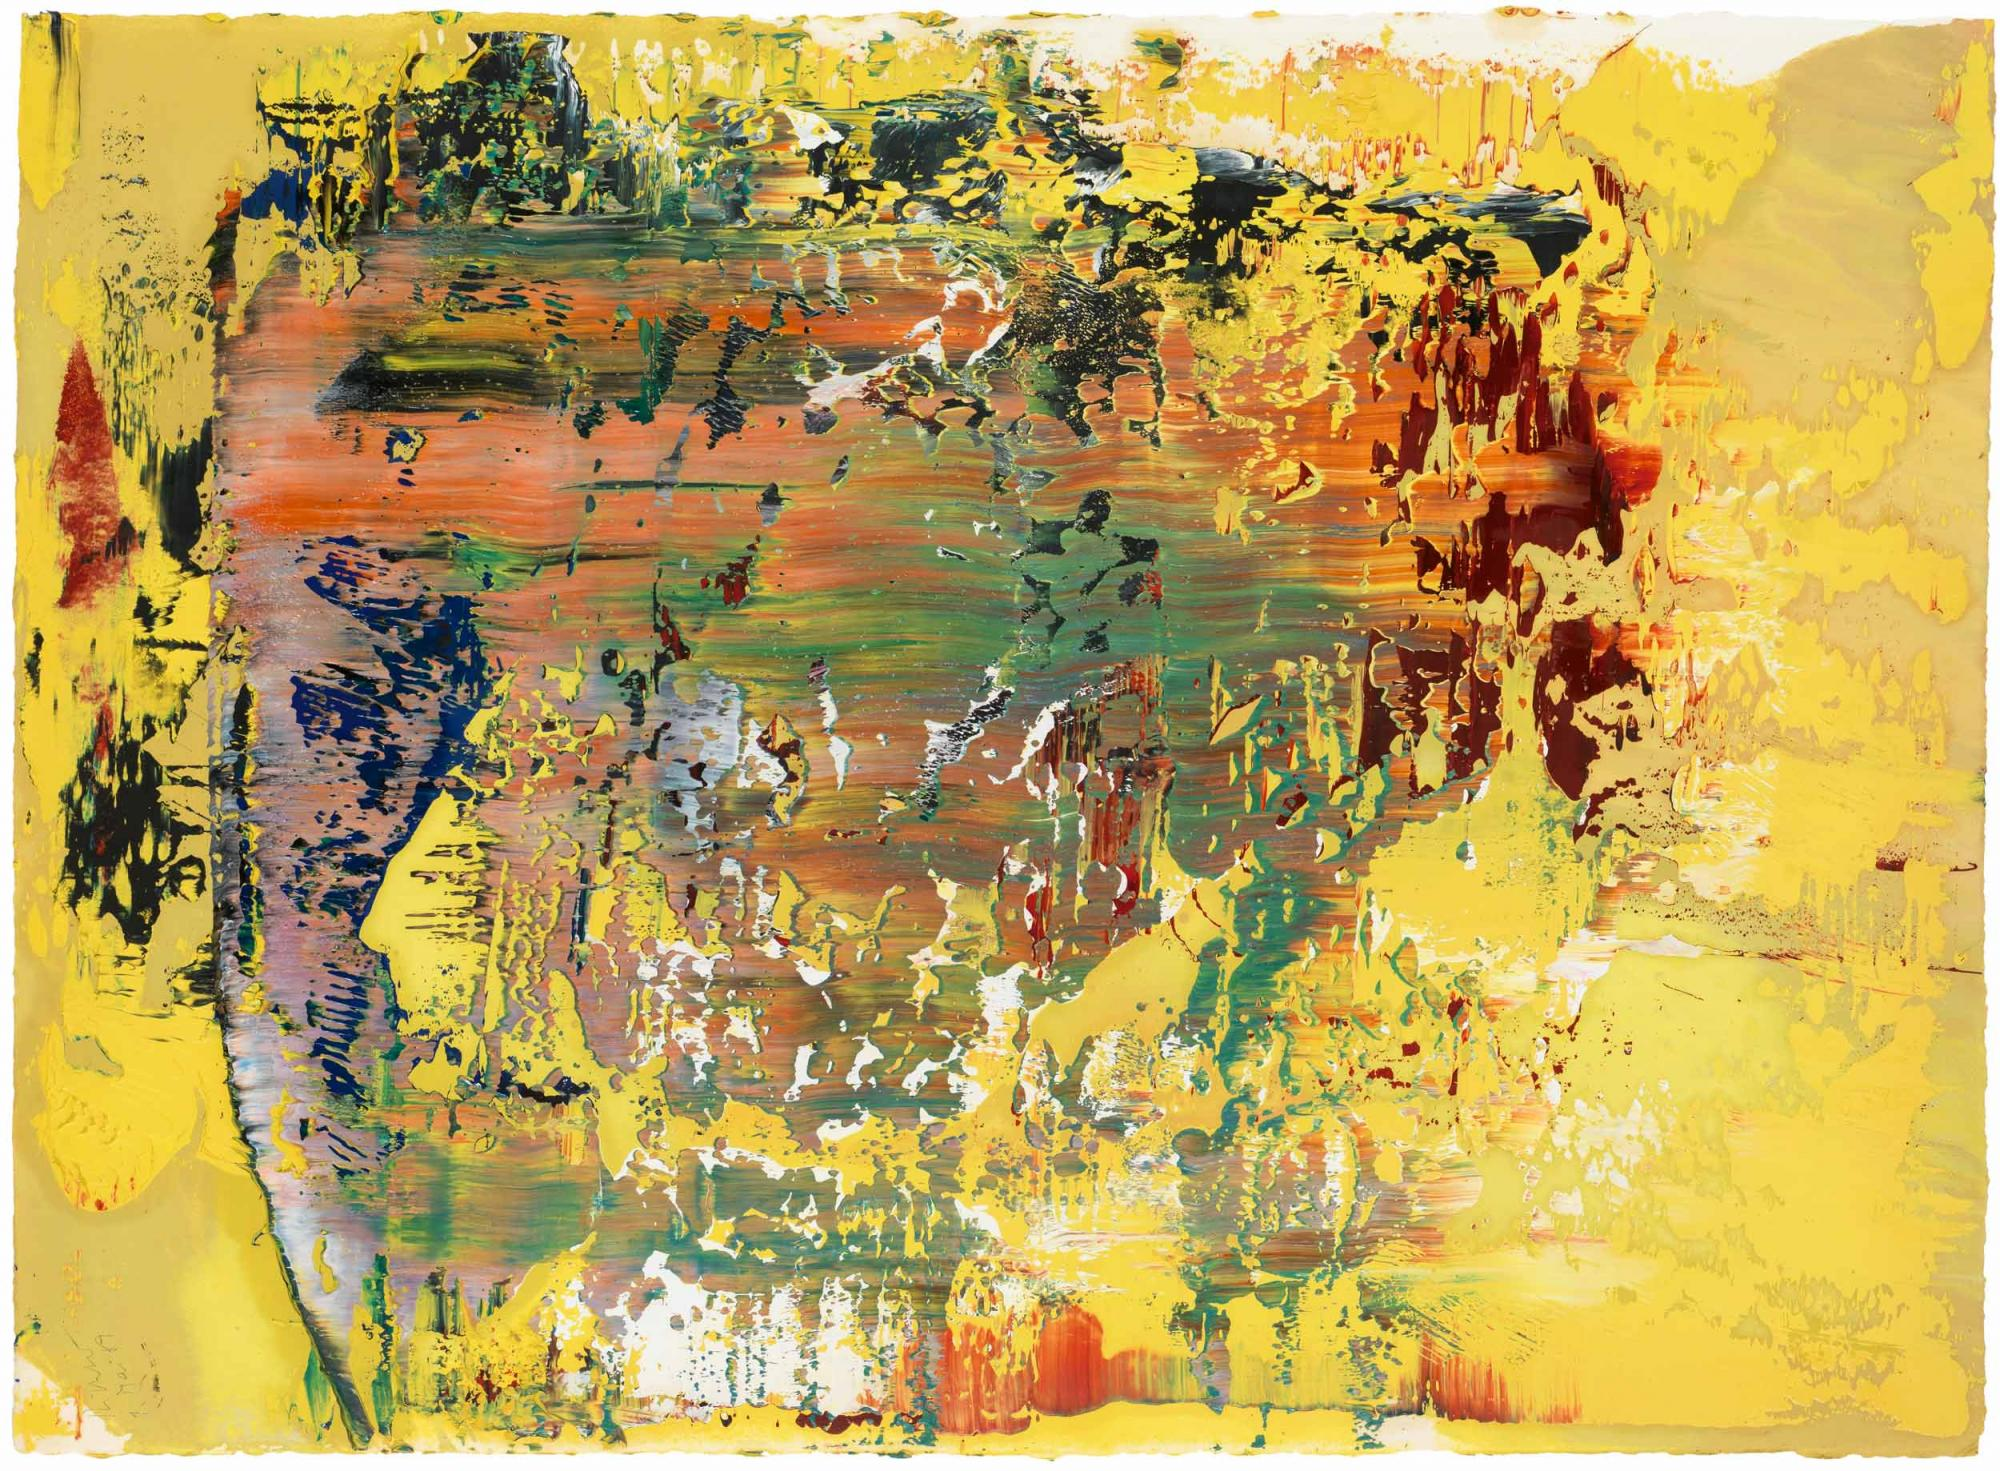 Lot-18-Gerhard-Richter-1st-May-1989.jpg